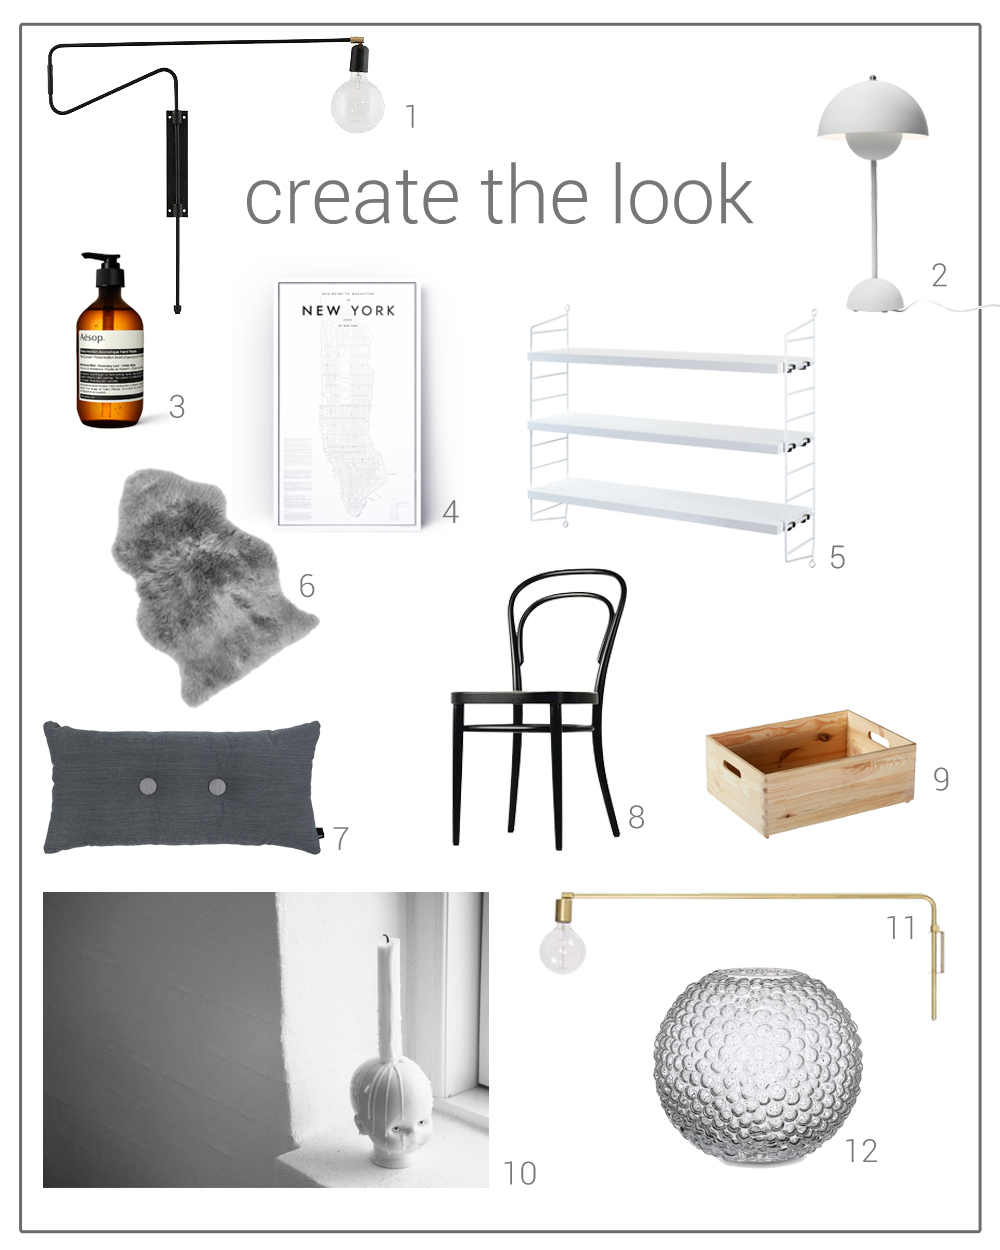 Create-the-look-Scandinavian-interior-design-wishlist